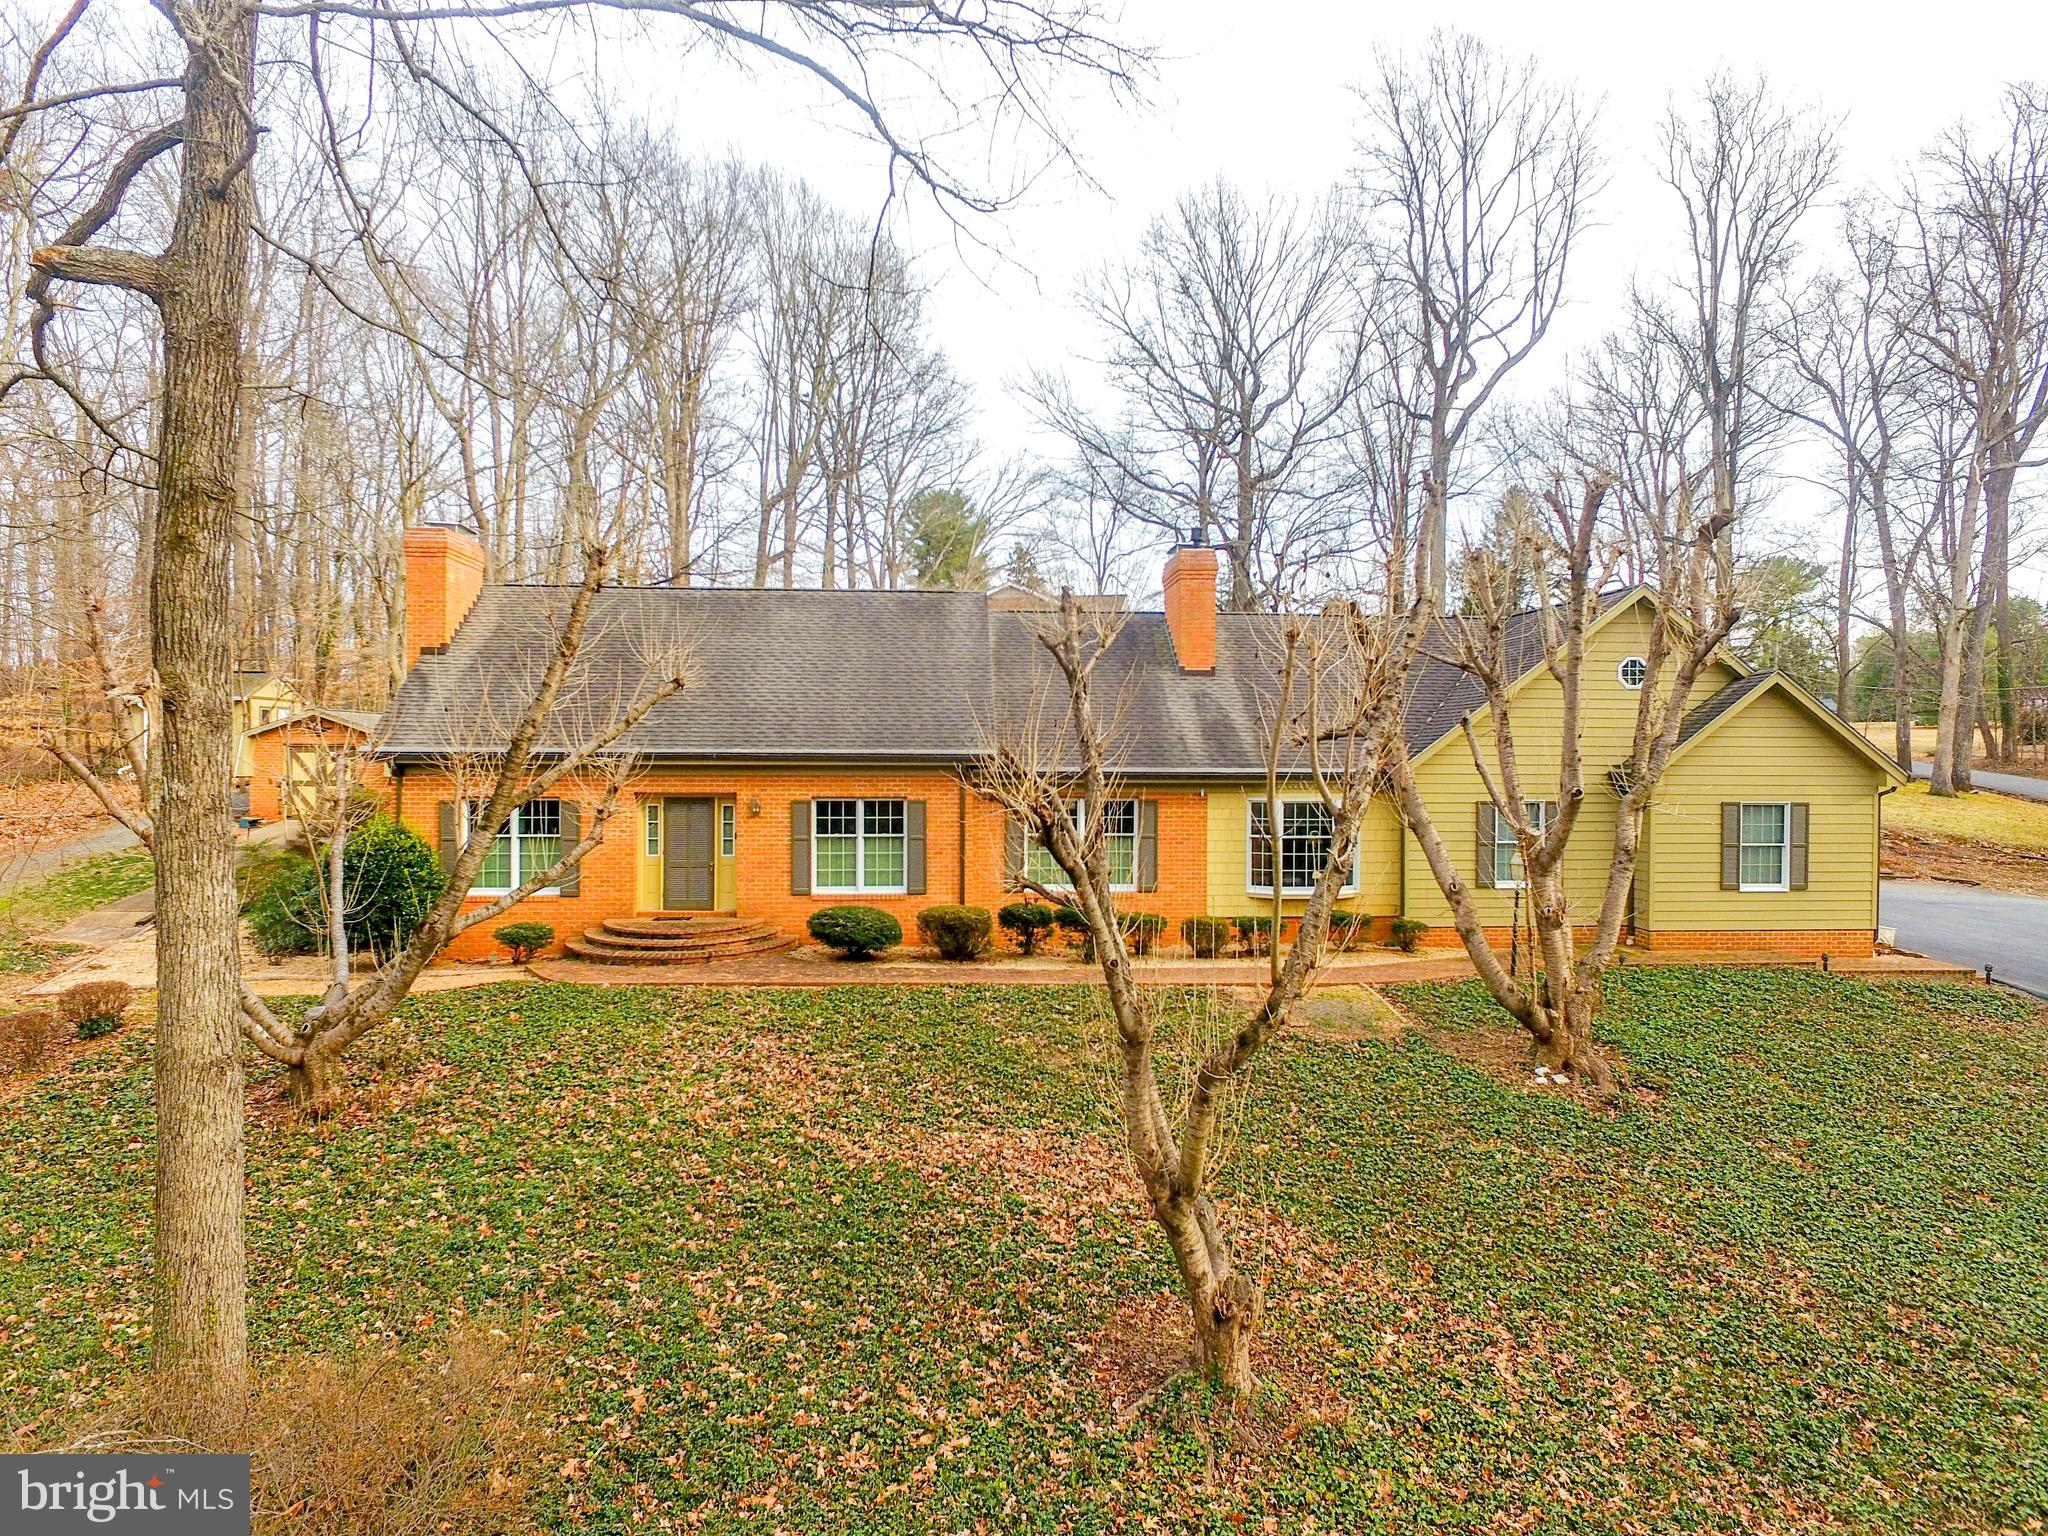 9599 WOODBERRY FOREST ROAD, ORANGE, VA 22960